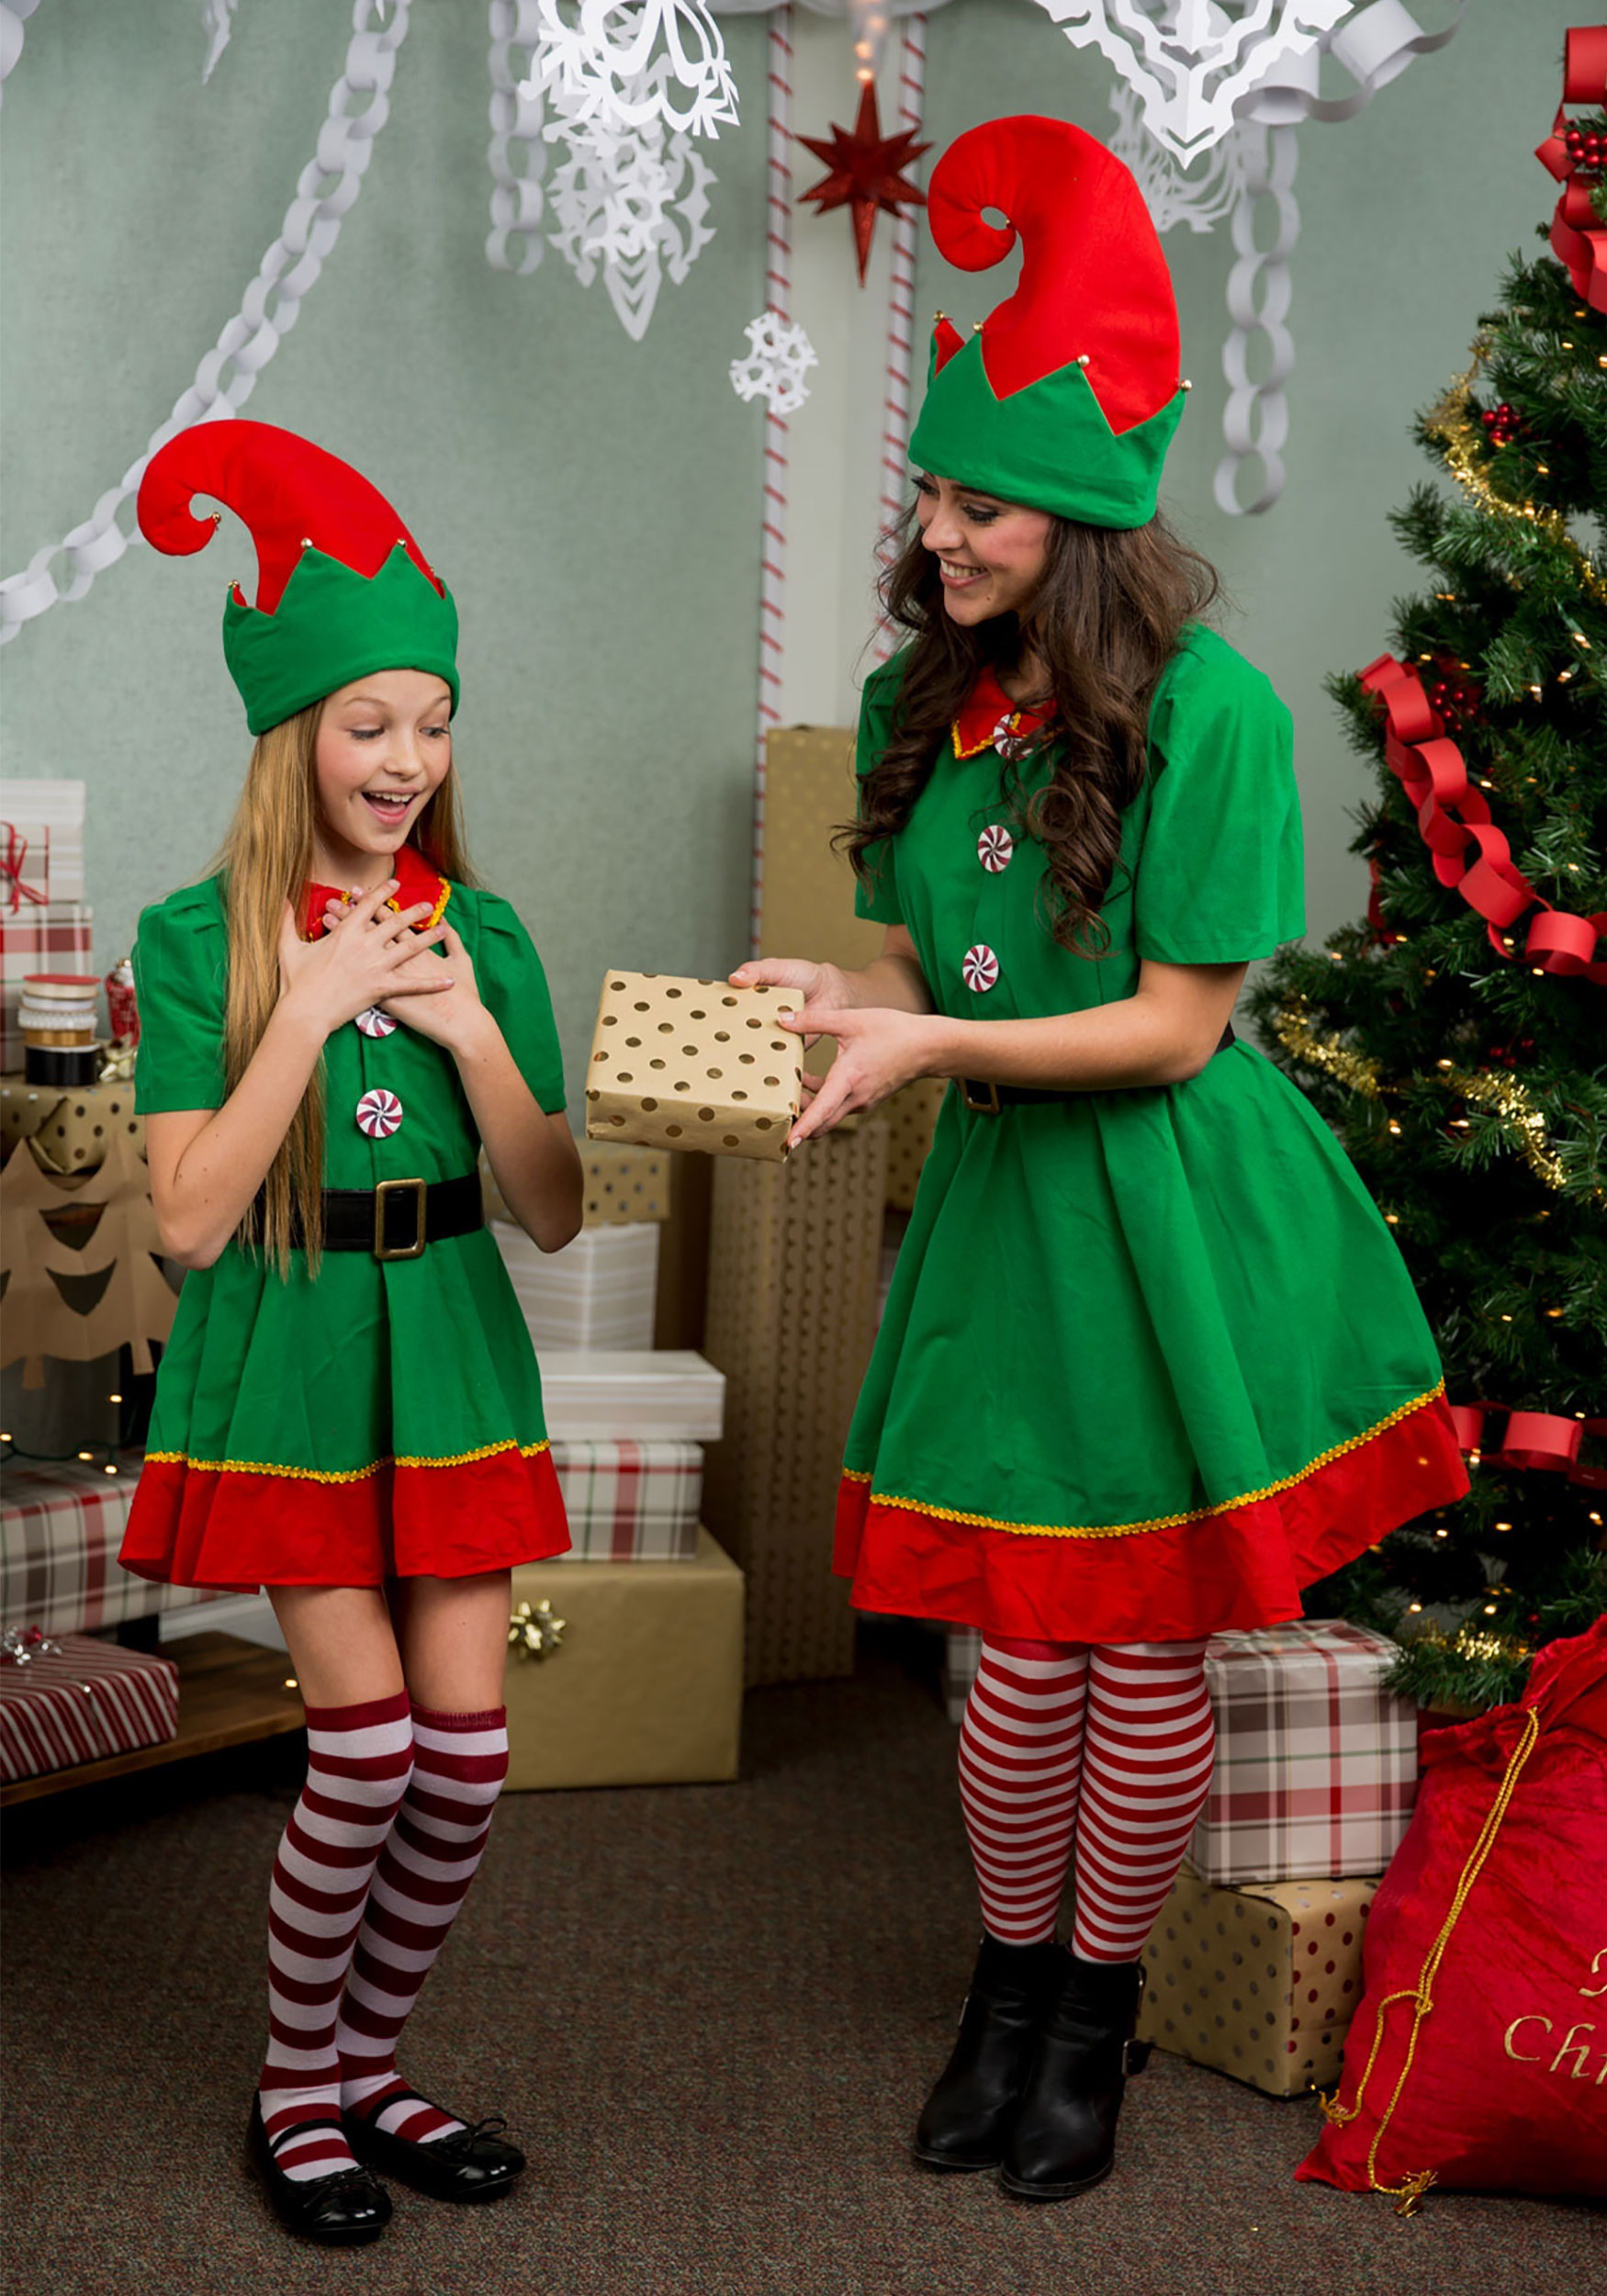 ec25a5a69f5 Women s Holiday Elf Plus Size Costume 1X 2X 3X